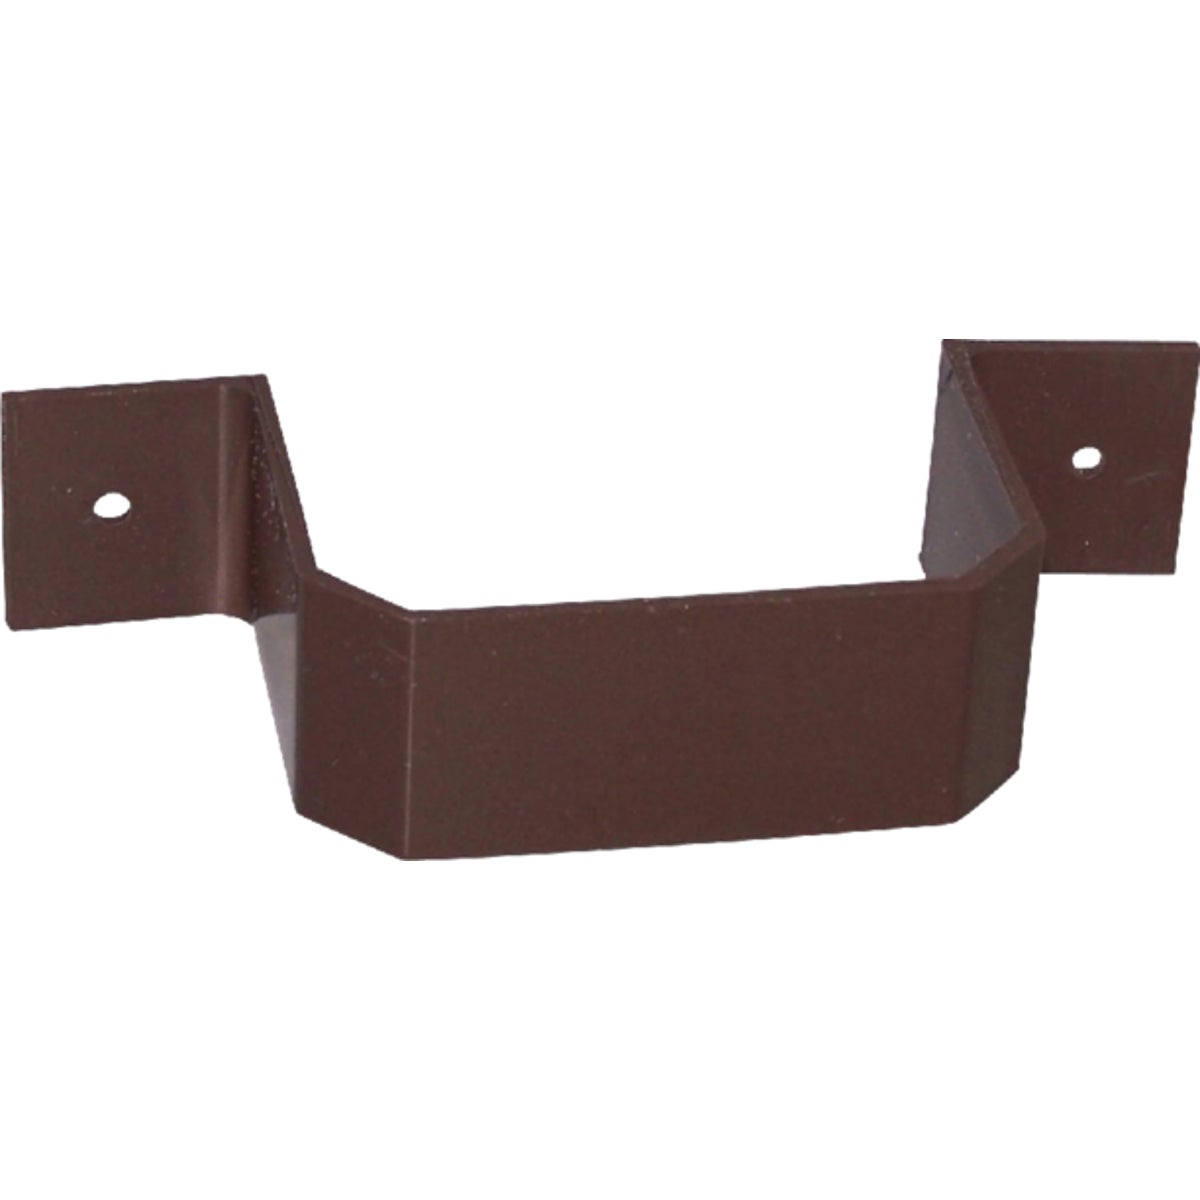 2X3BRN DOWNSPOUT BRACKET - AB202 by Genova Products